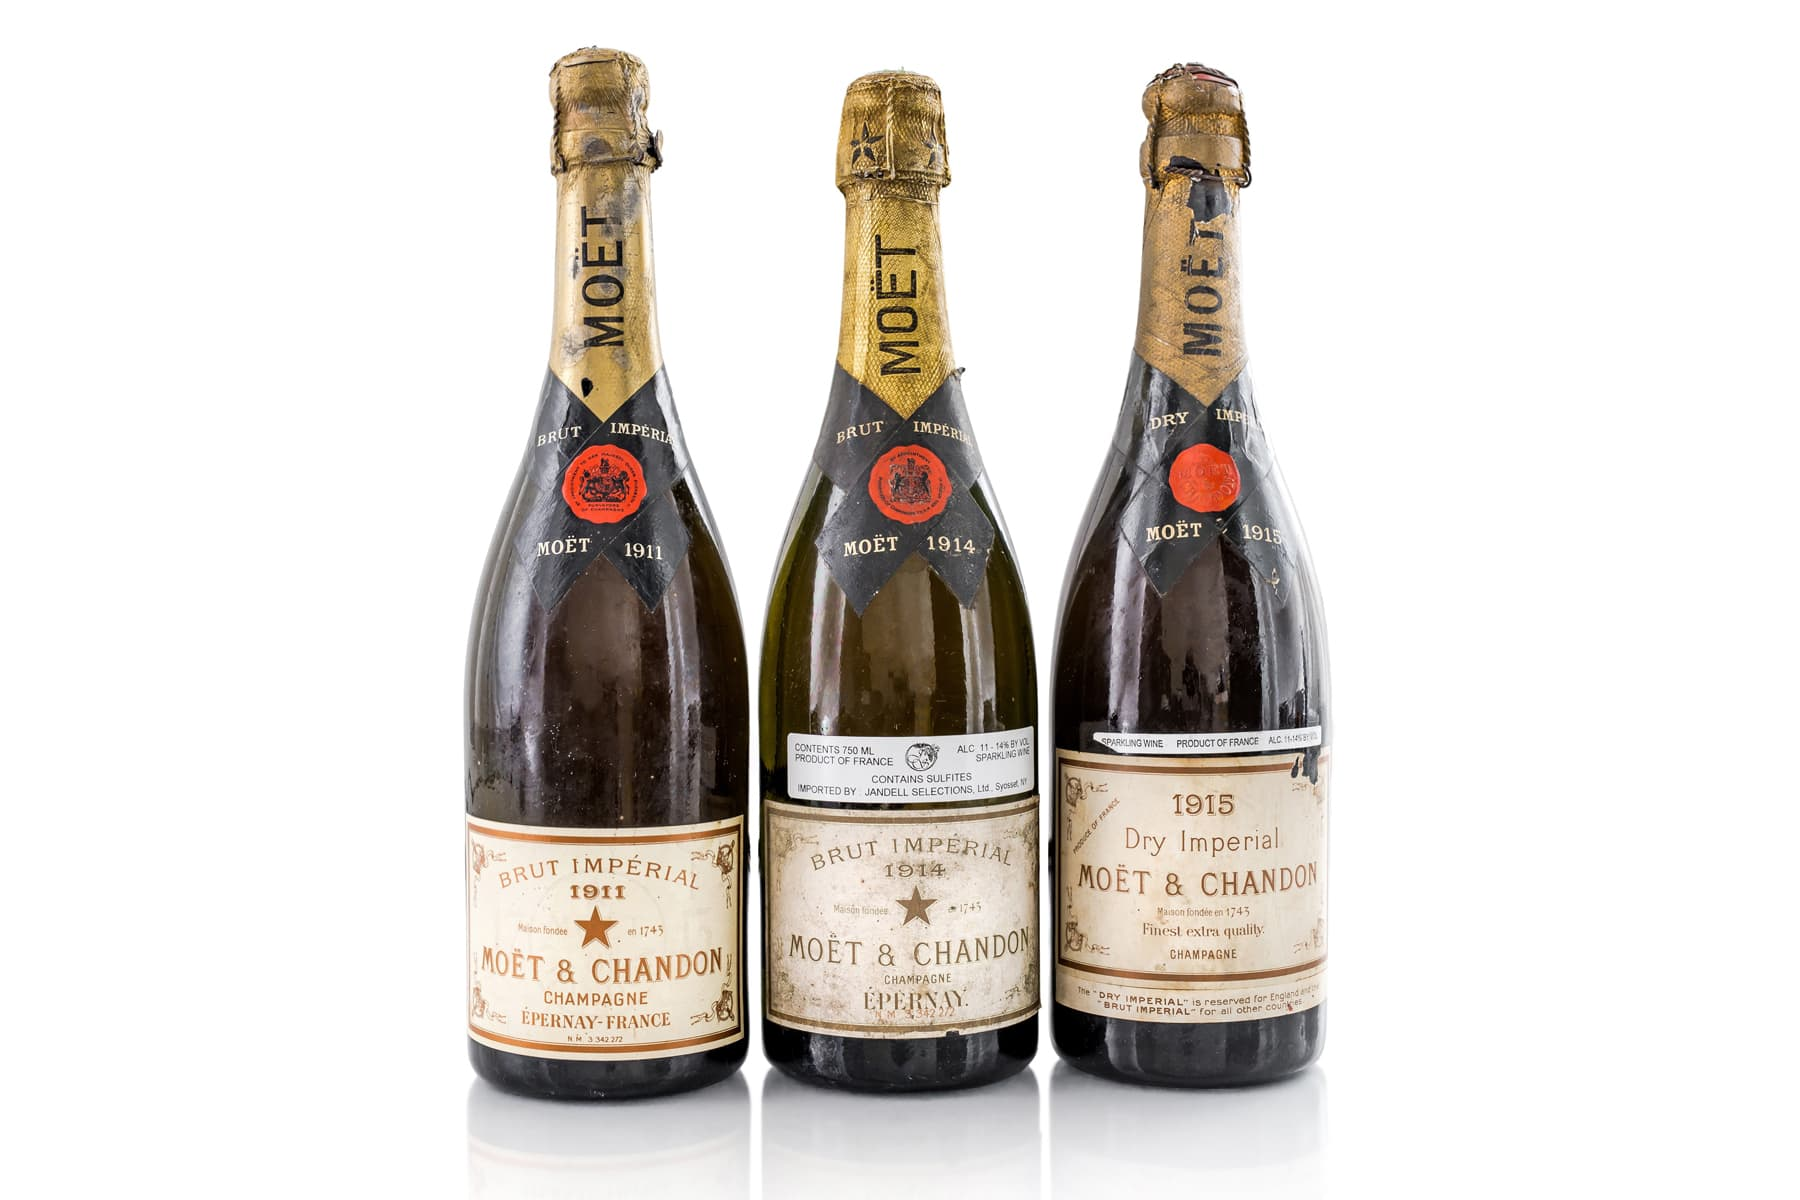 Auction of rare old Champagne could fetch $10 million